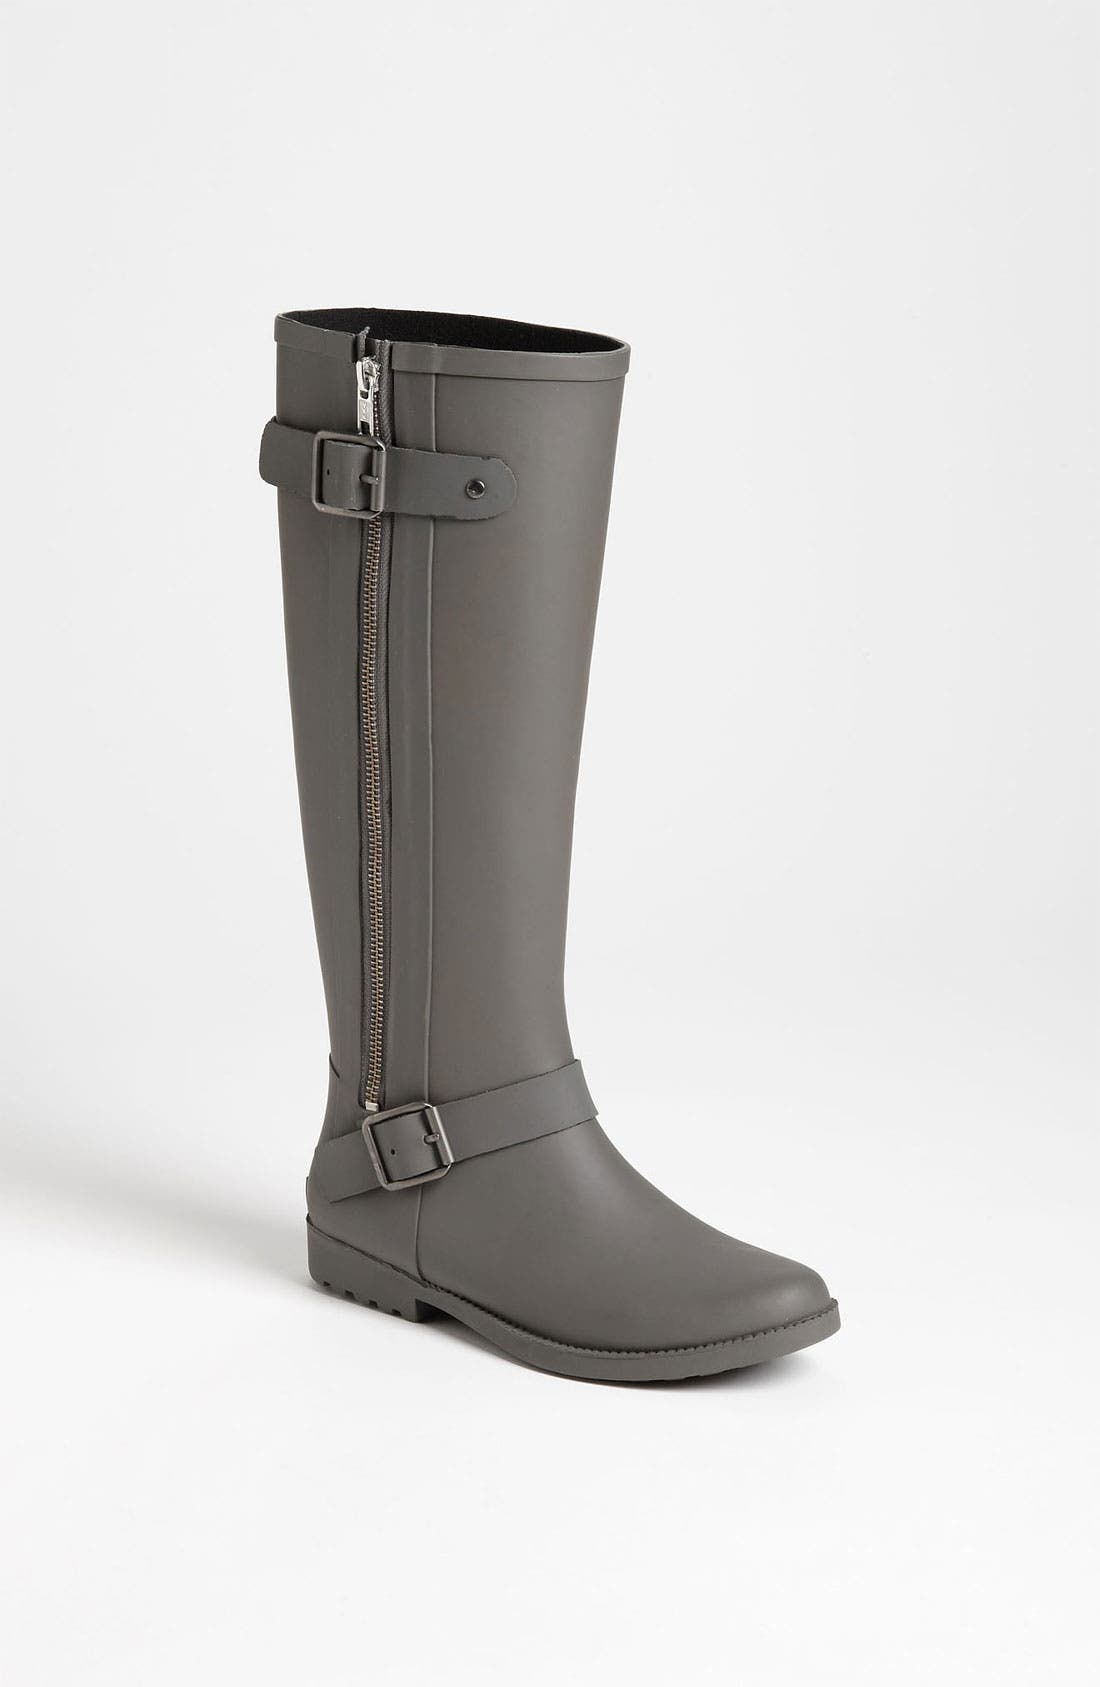 Alternate Image 1 Selected - ALDO 'Maudie' Rain Boot (Women)